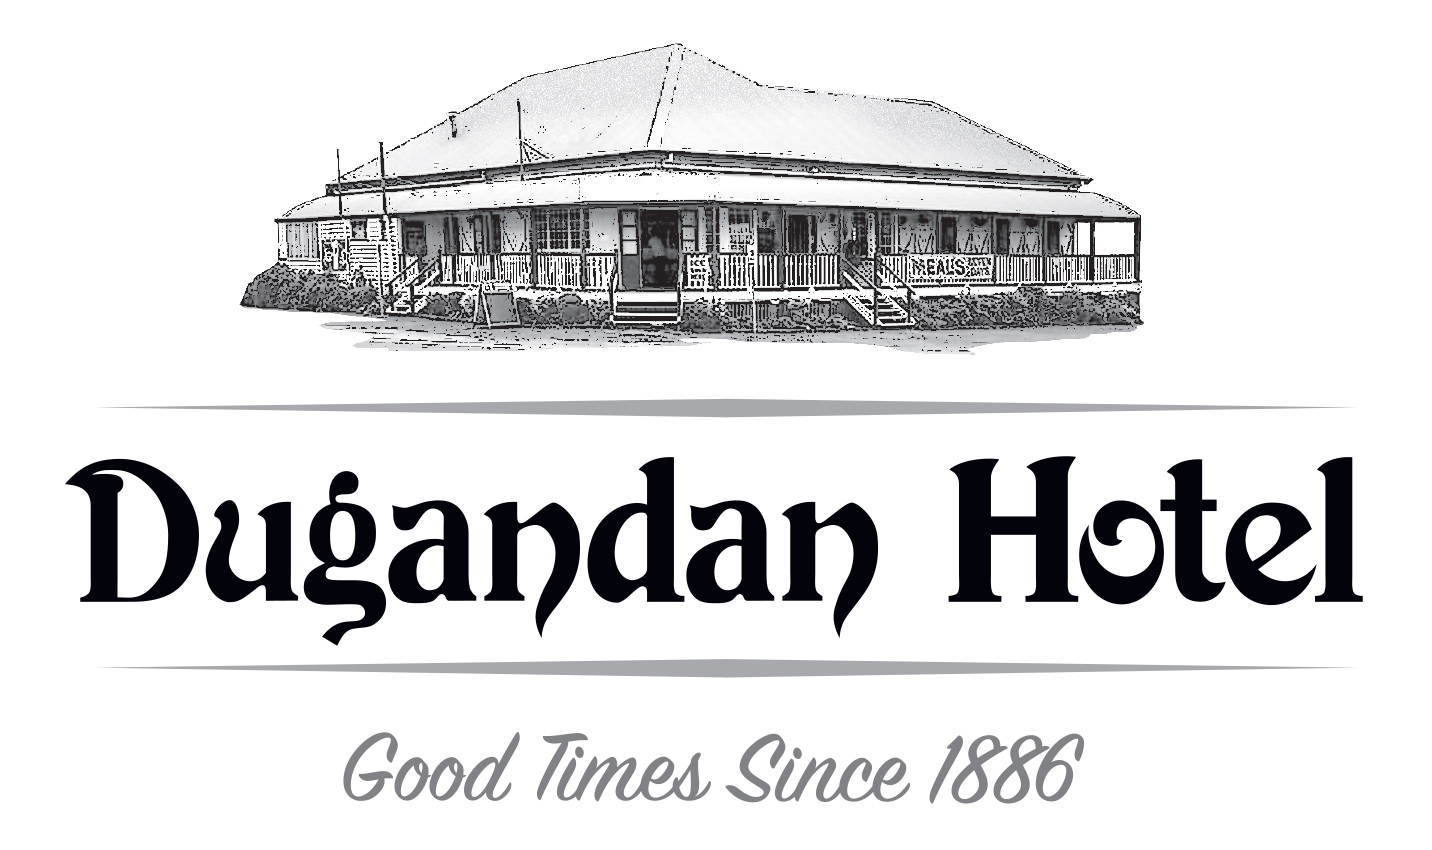 Dugandan Hotel - Yarra Valley Accommodation